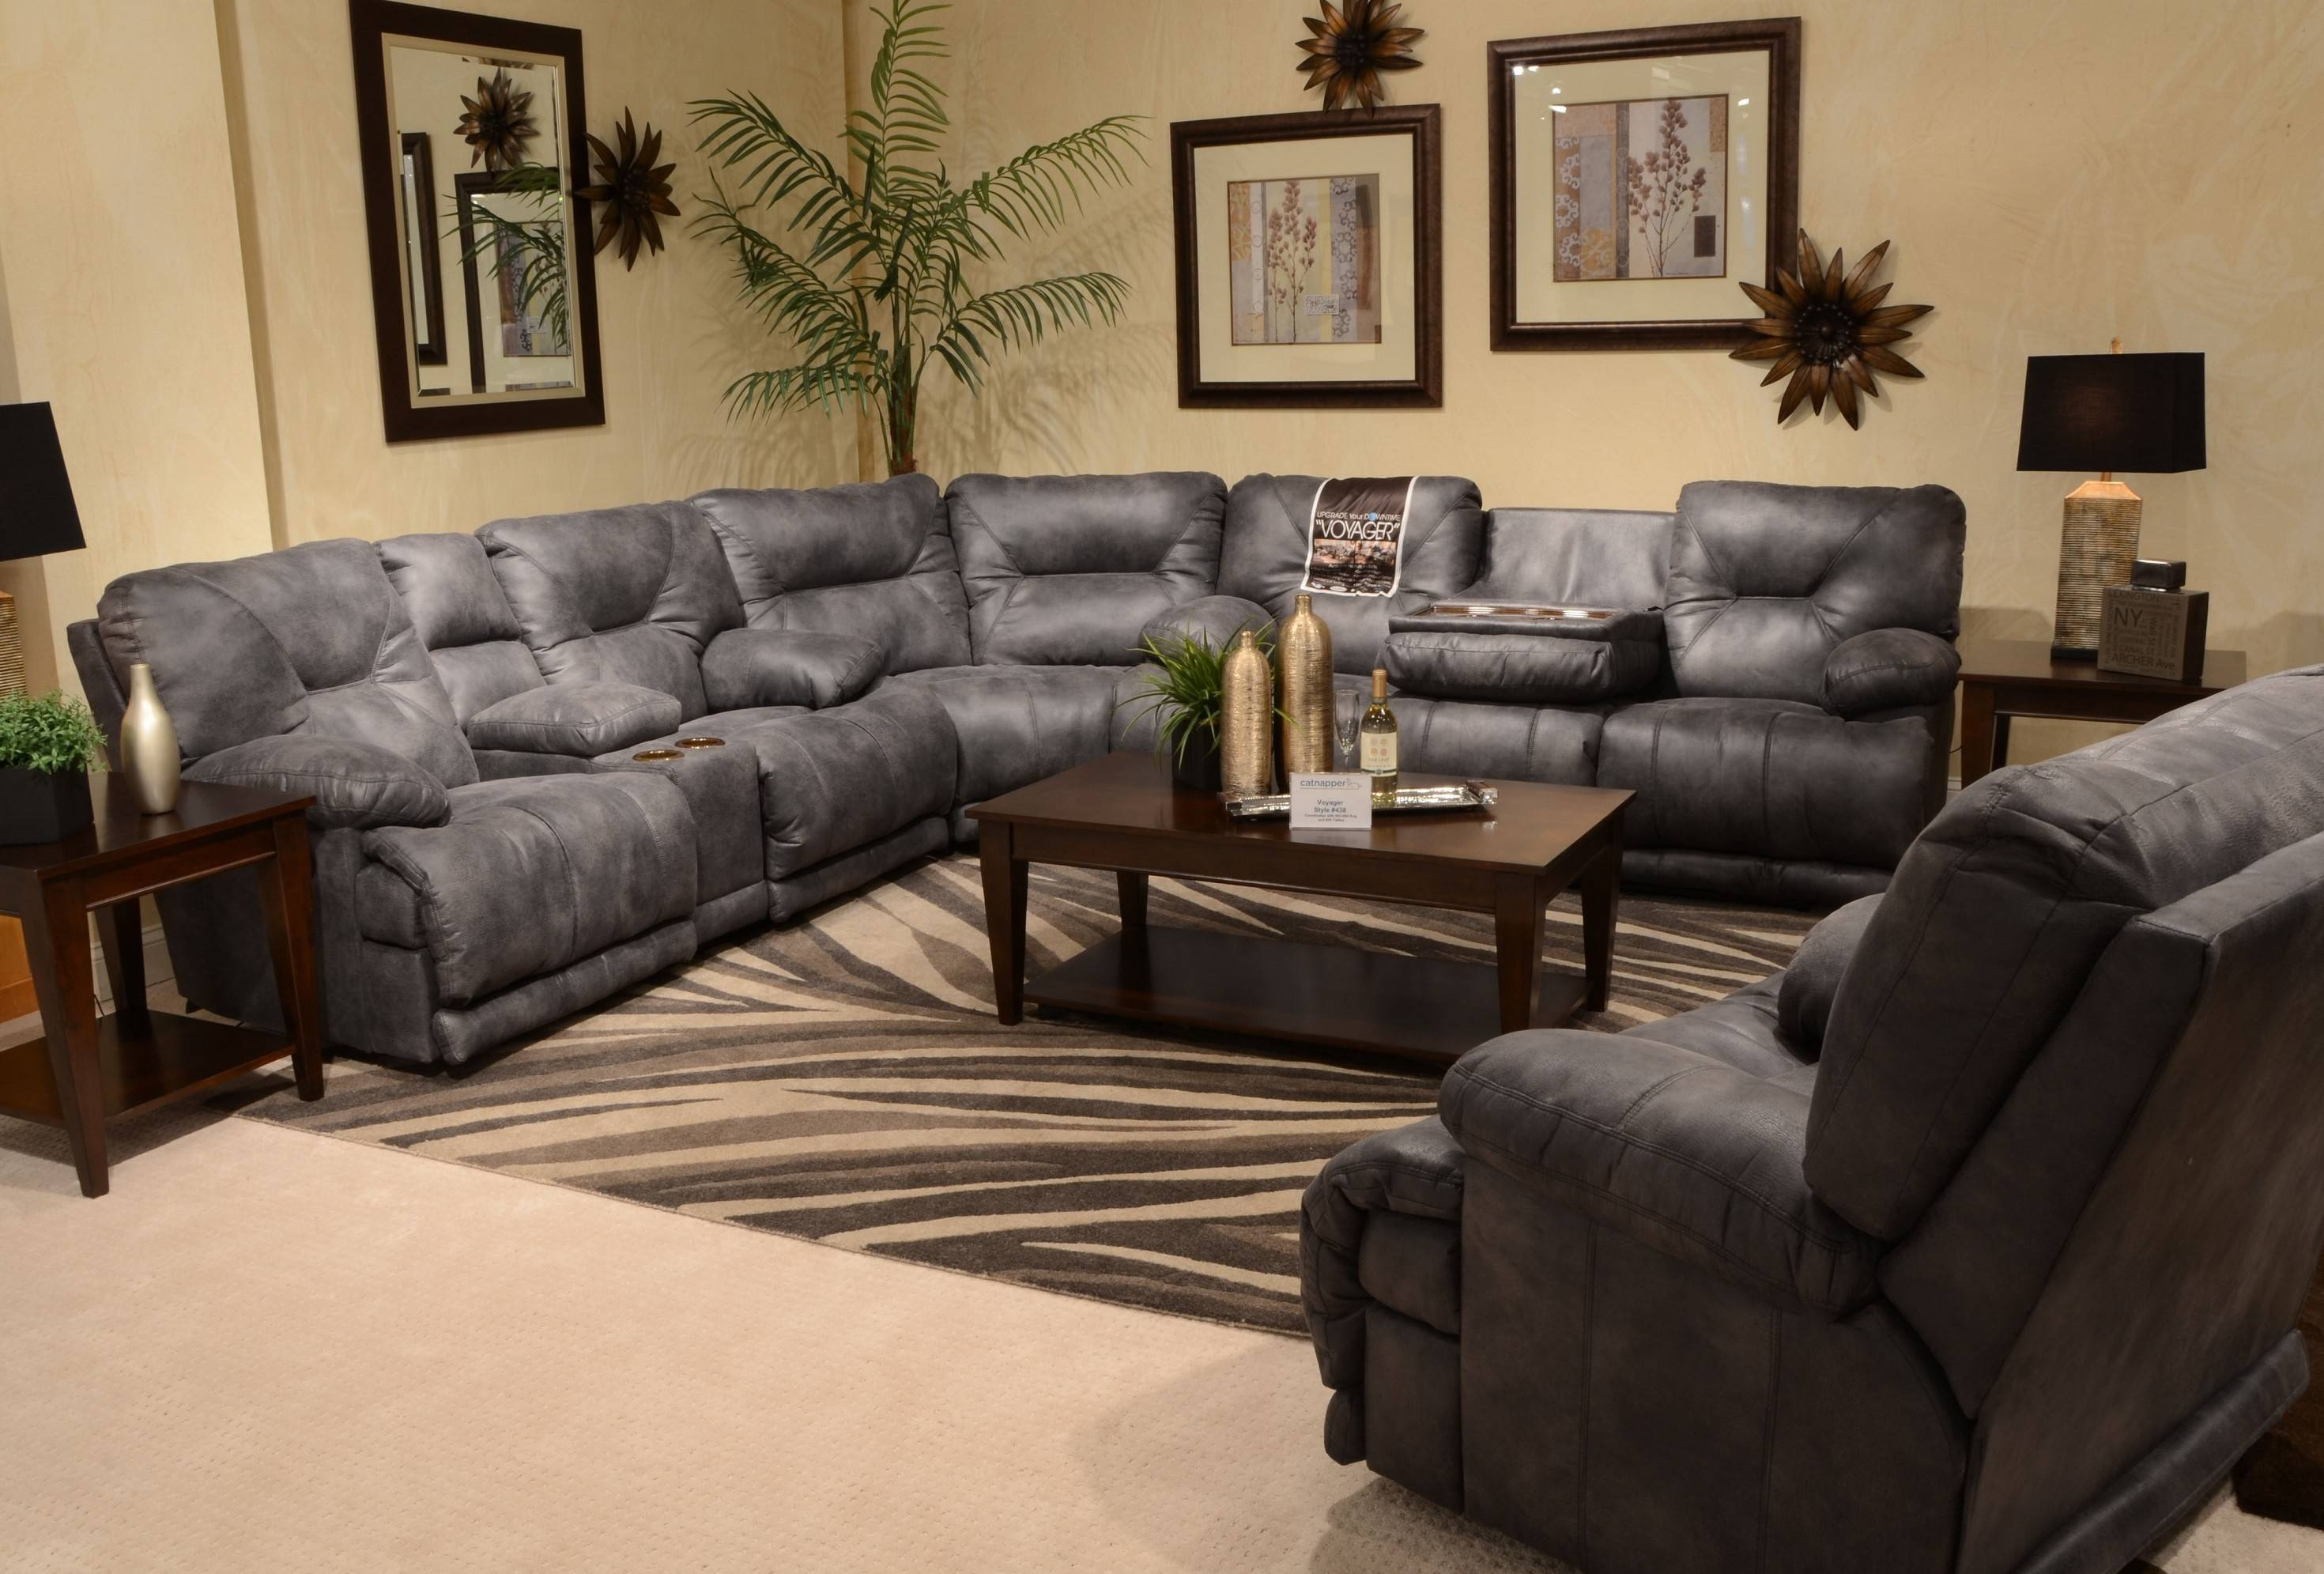 Popular Grey Velvet Sectional Sofa 87 With Additional Classic throughout Classic Sectional Sofas (Image 21 of 30)